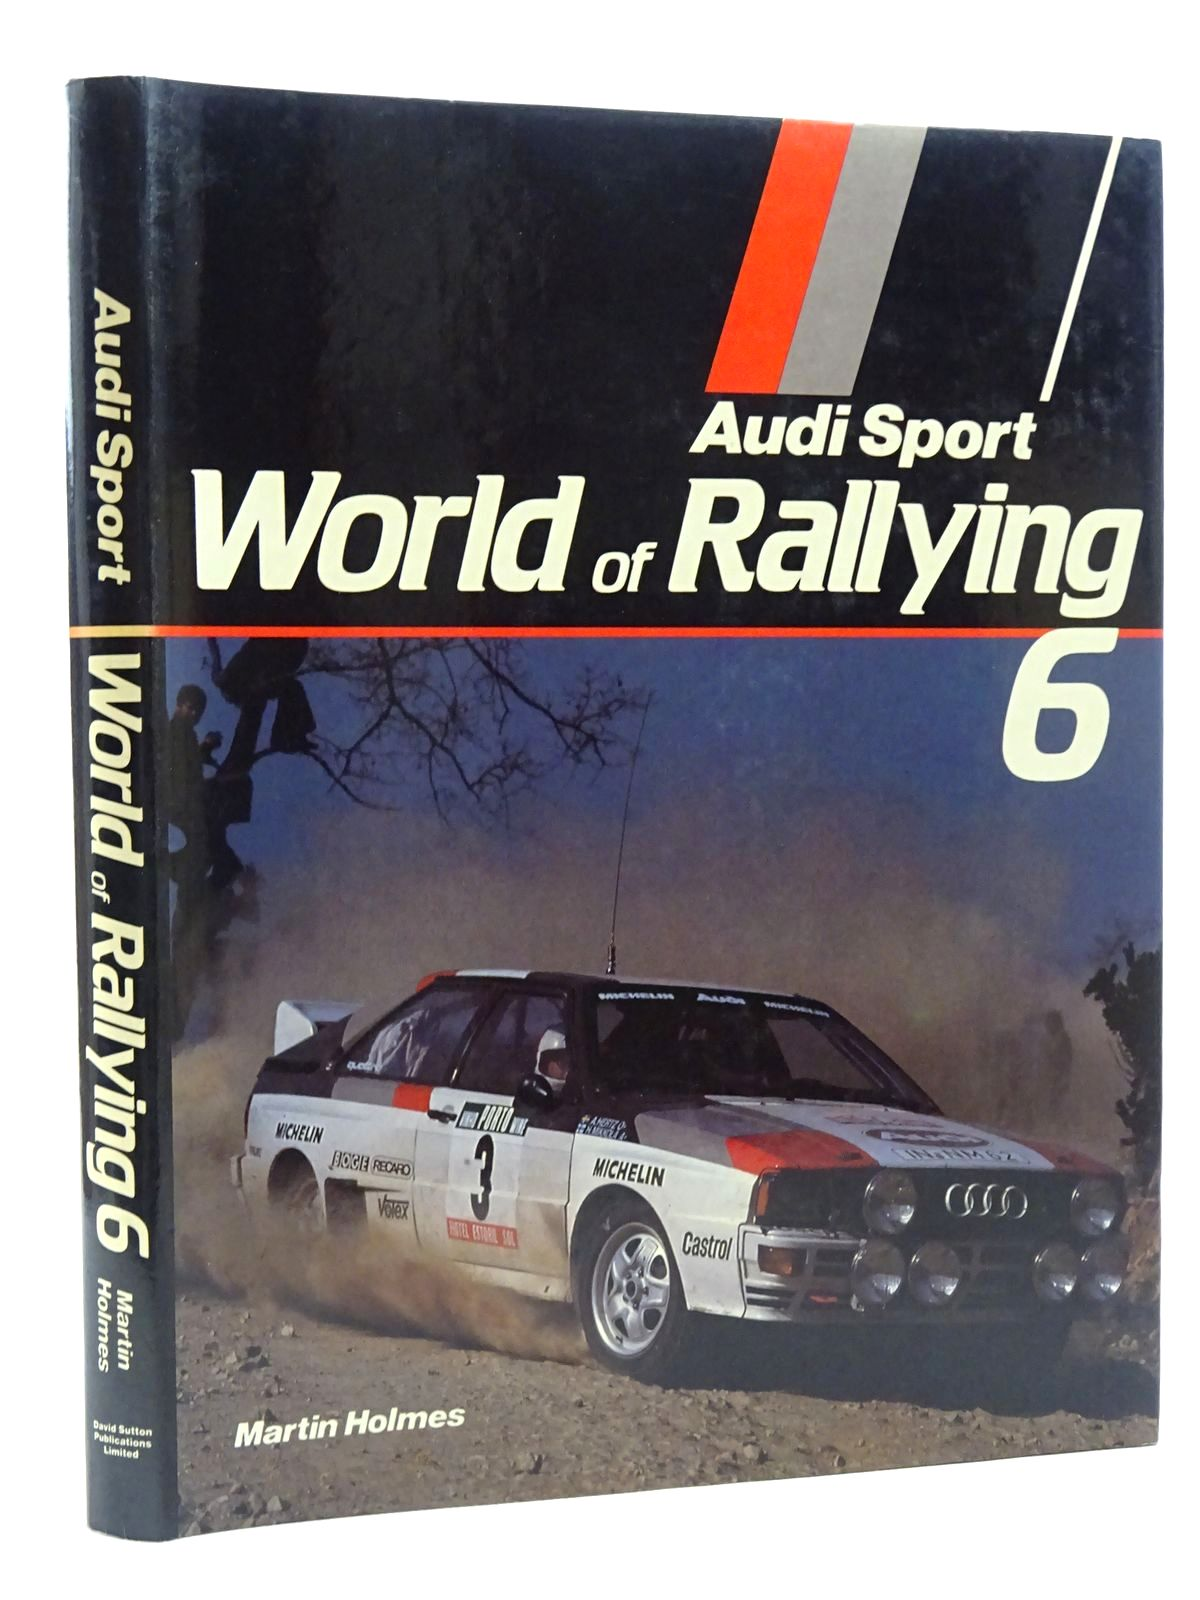 Photo of AUDI SPORT WORLD OF RALLYING 6 written by Holmes, Martin published by David Sutton (STOCK CODE: 1815964)  for sale by Stella & Rose's Books